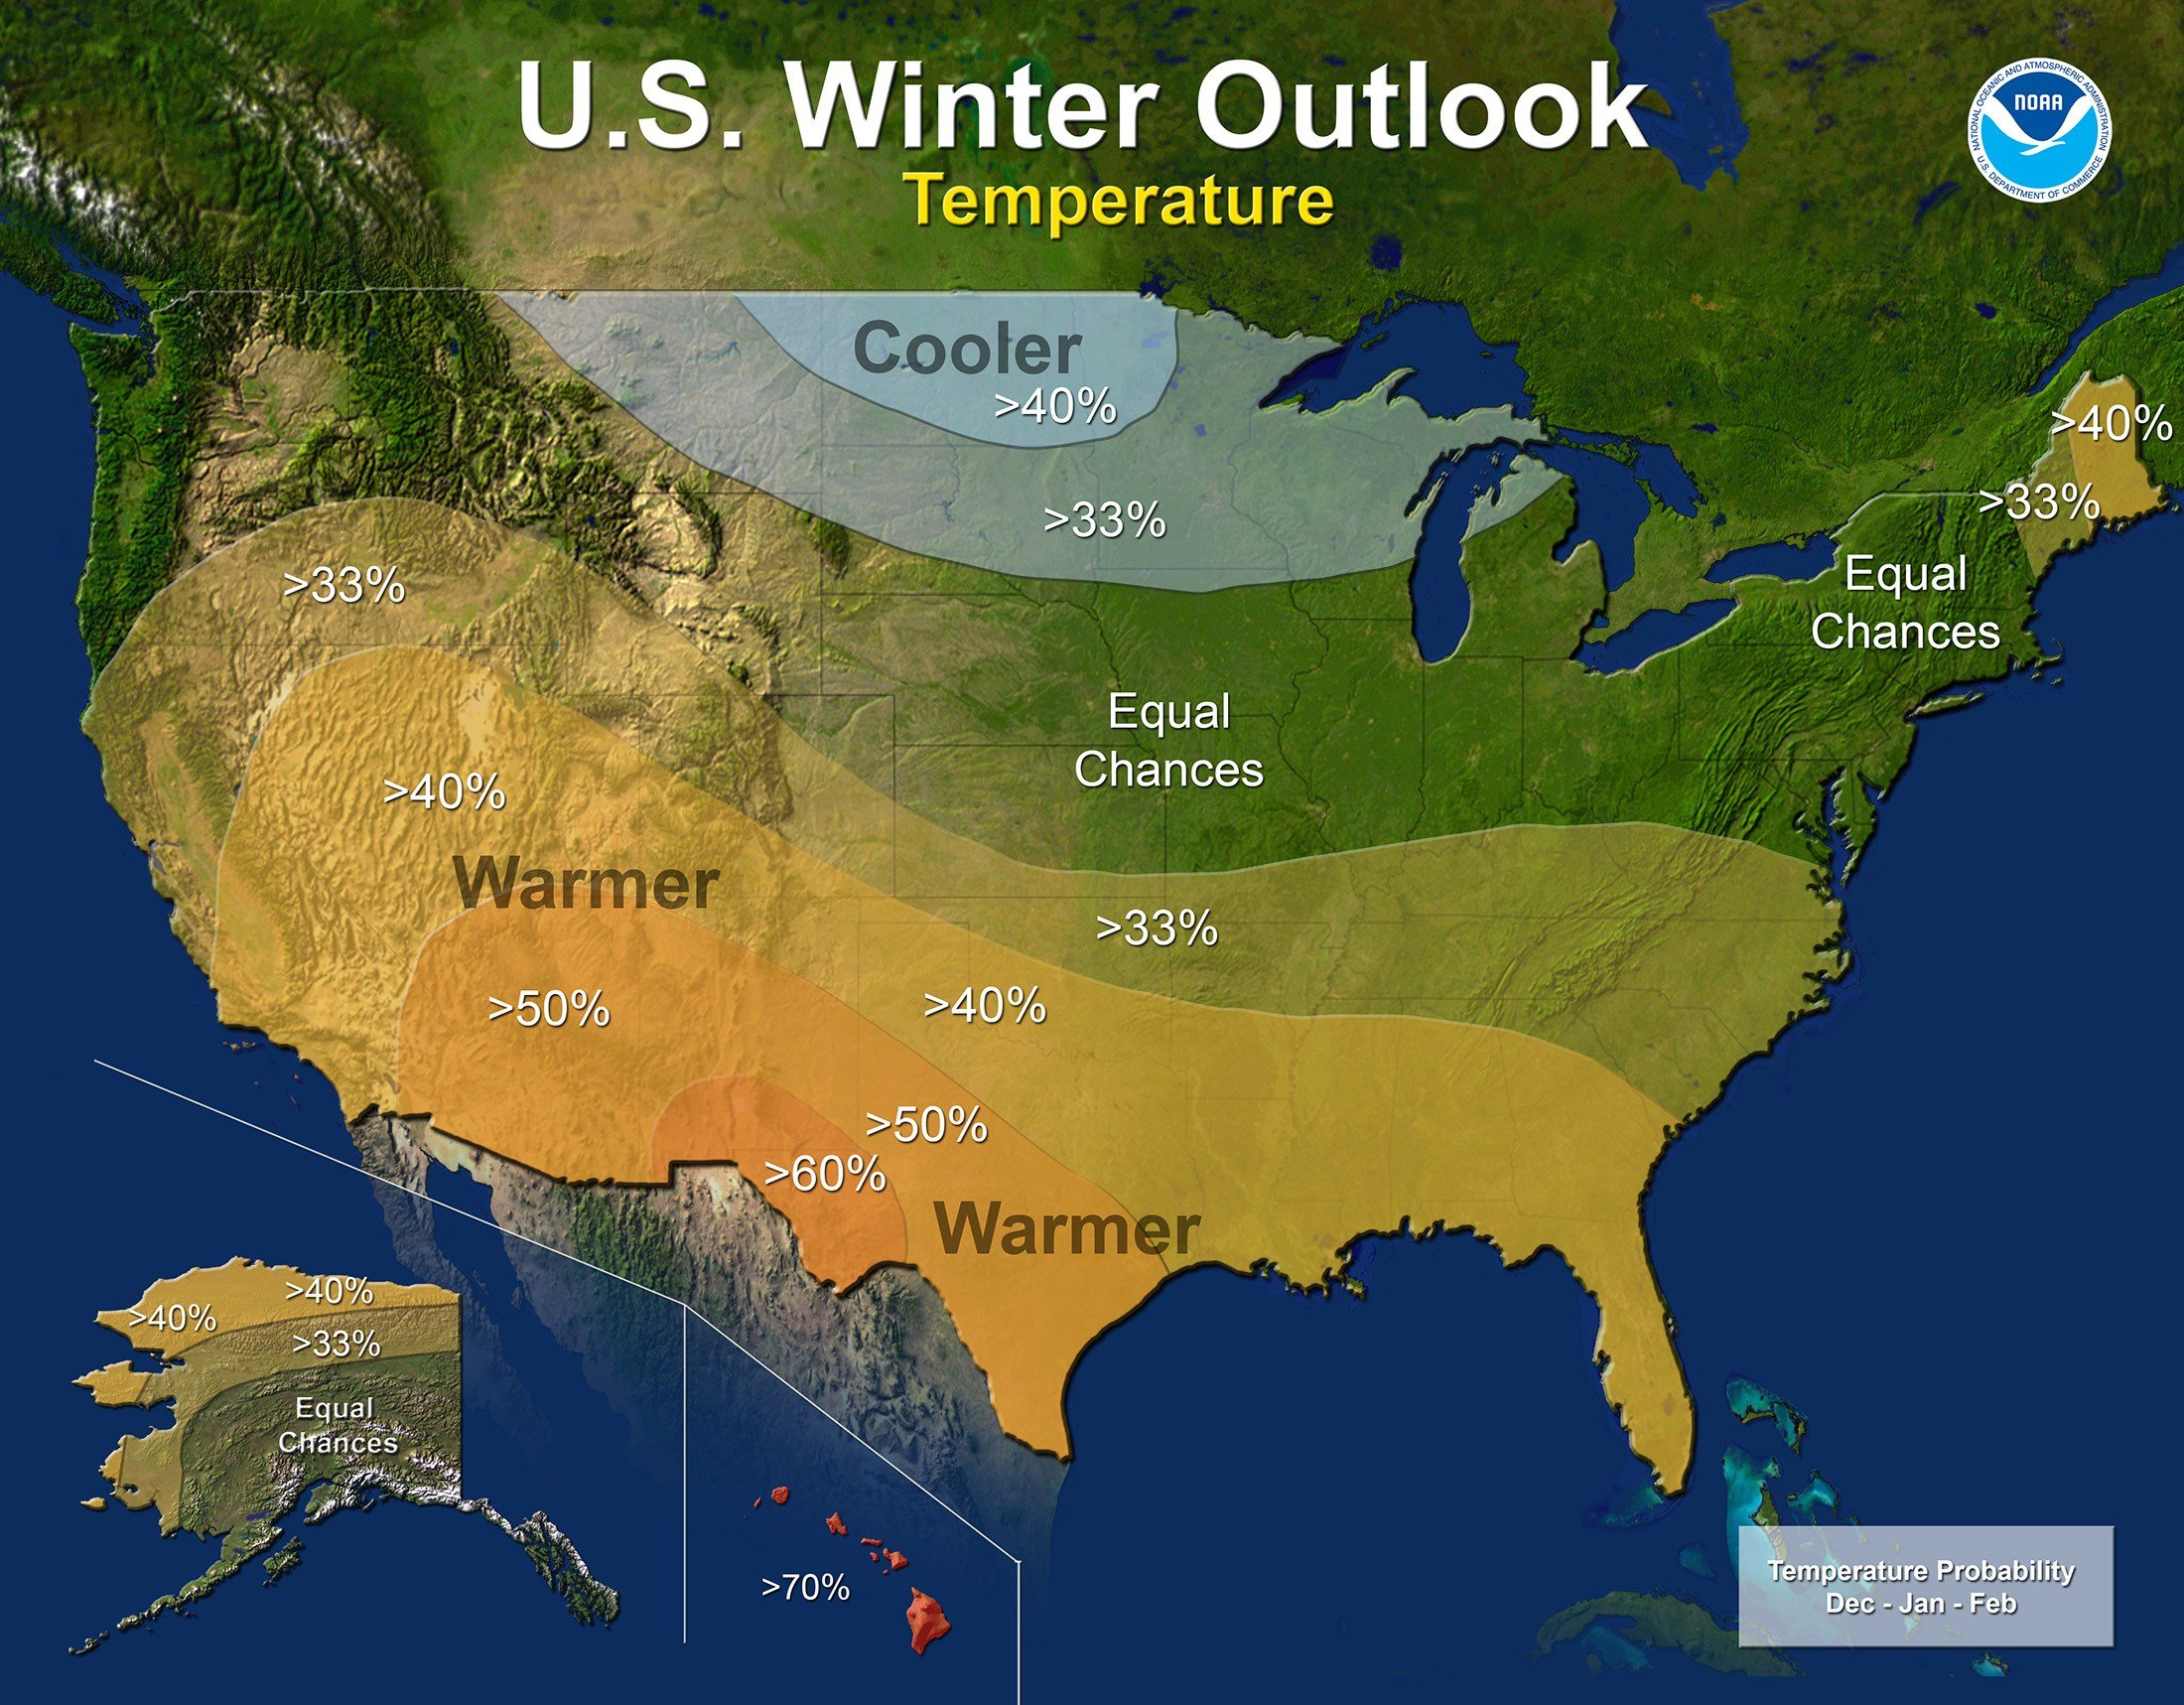 This map provided by NOAA shows the winter temperature outlook for the U.S. Federal forecasters say thanks to a nascent La Nina it is likely to be warmer and drier than normal down south, colder and wetter up north and in the middle it's hard to say what'